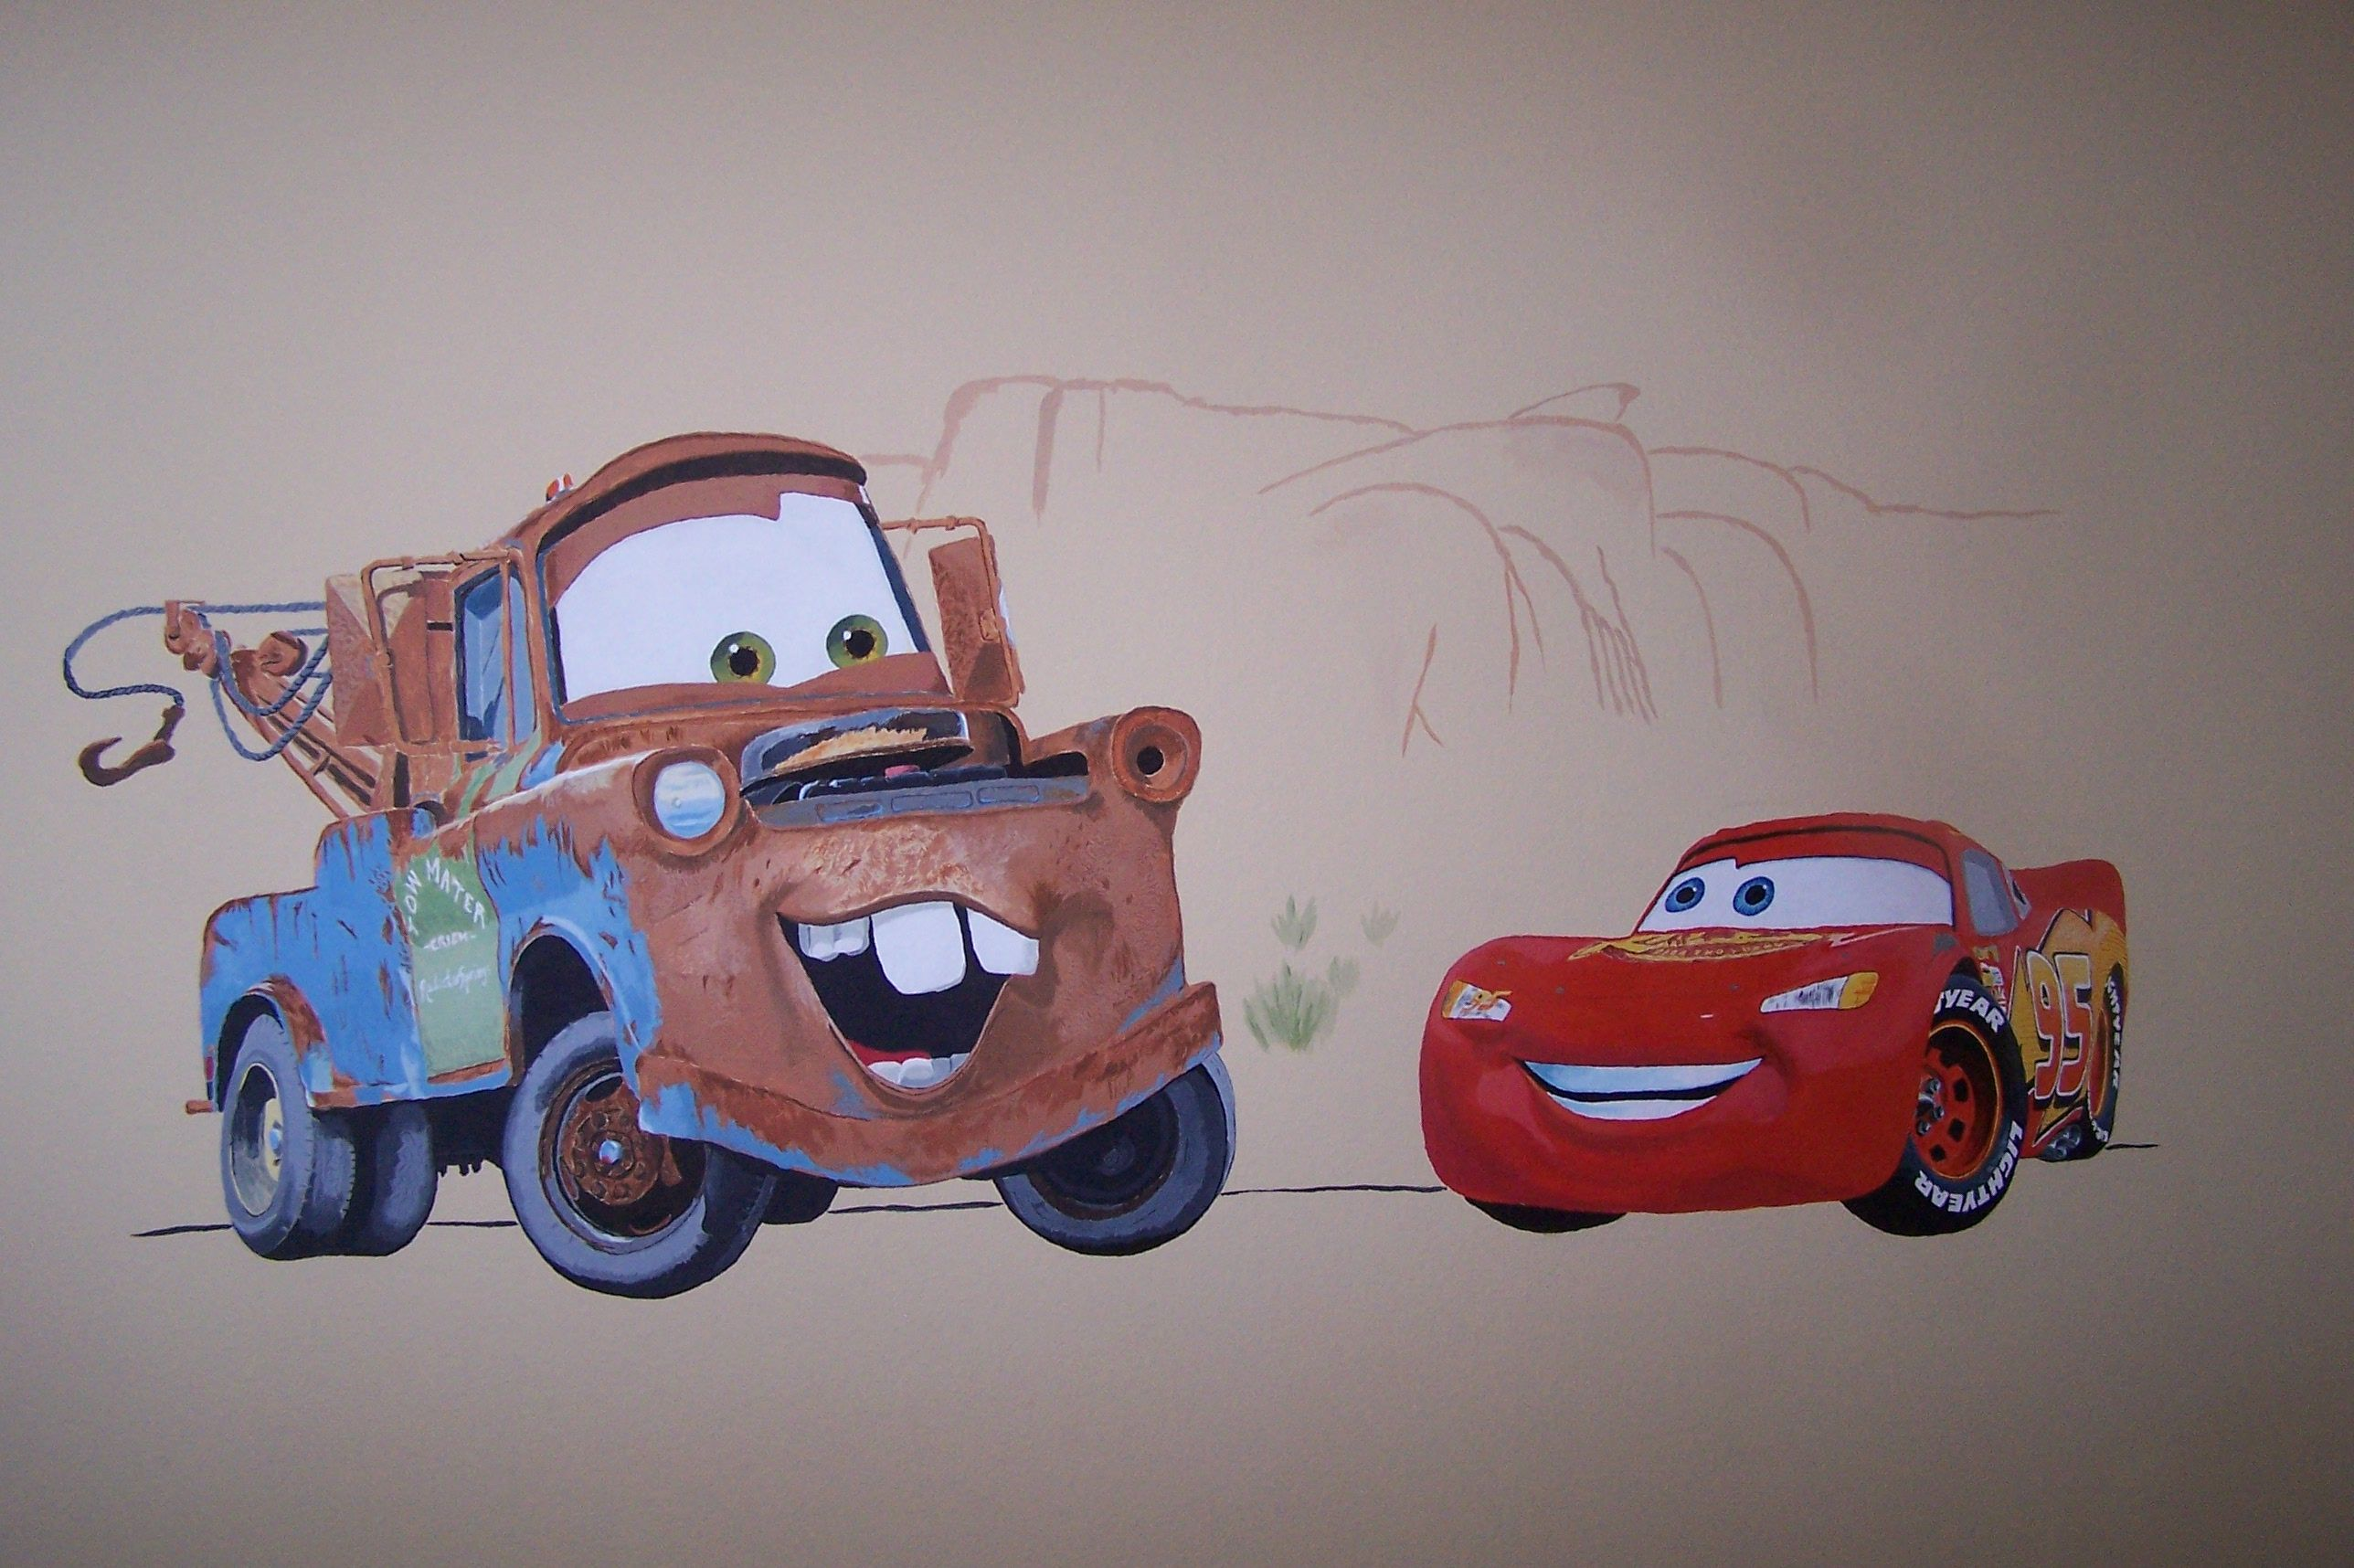 Cars Wall Mural Drawn And Painted By Eric With Lightning Mcqueen And Mater Disney Mural Office Mural Mural